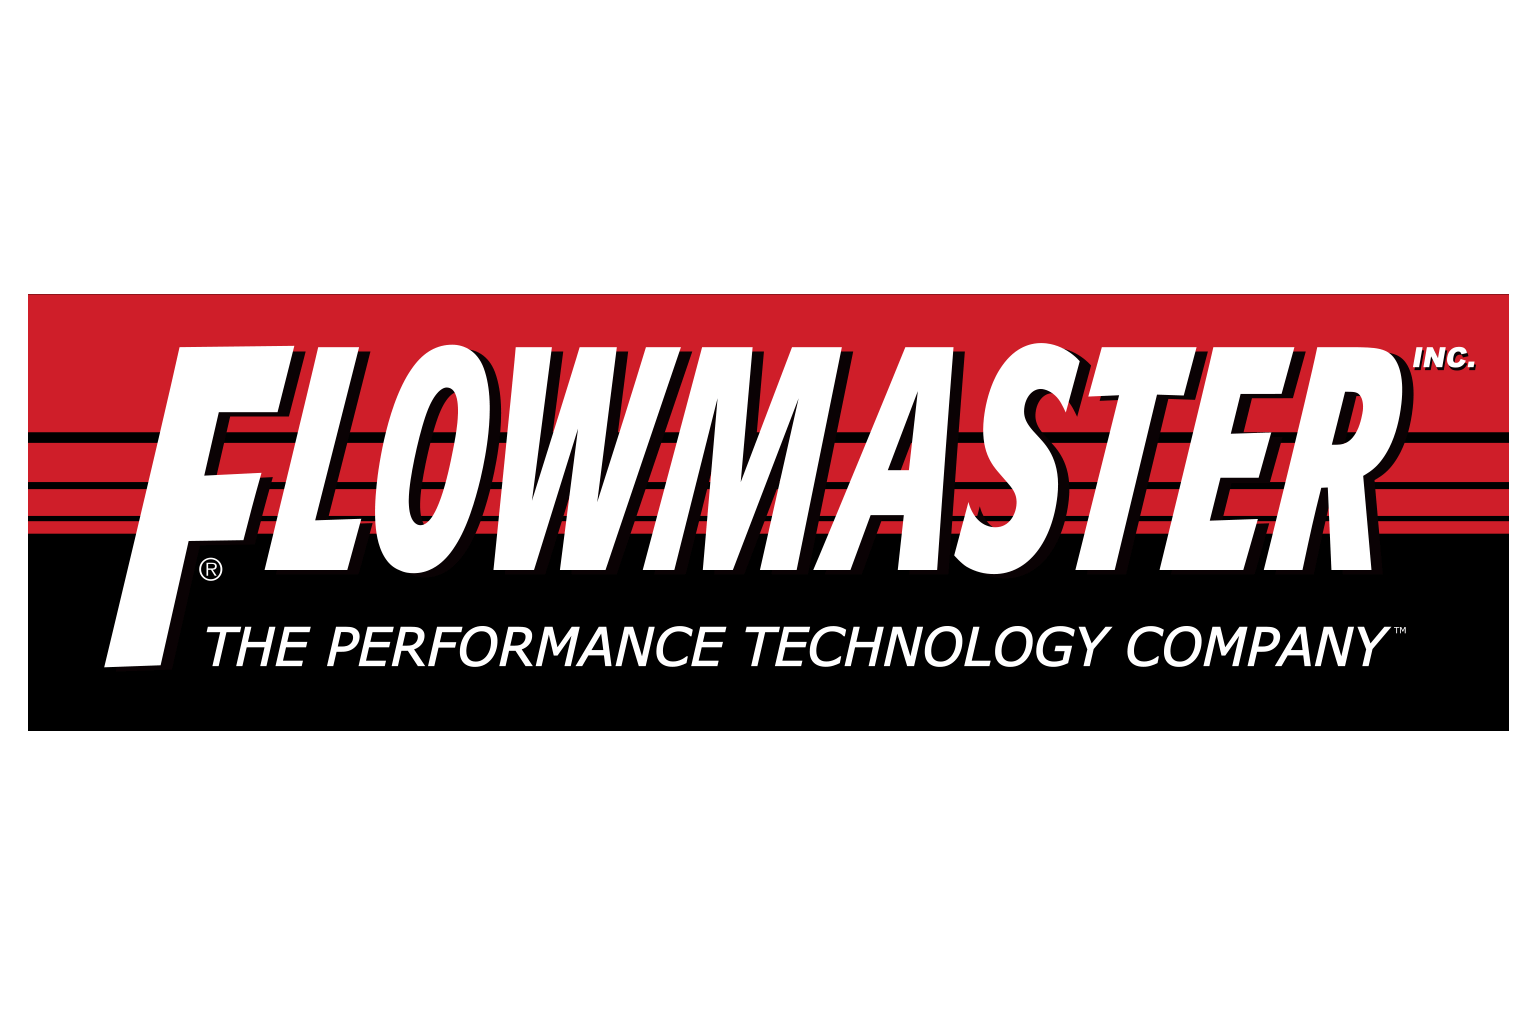 clamp on 3.00 in Rolled Angle Polished SS Fits 2.50 in Flowmaster 15361 Exhaust Tip Tubing